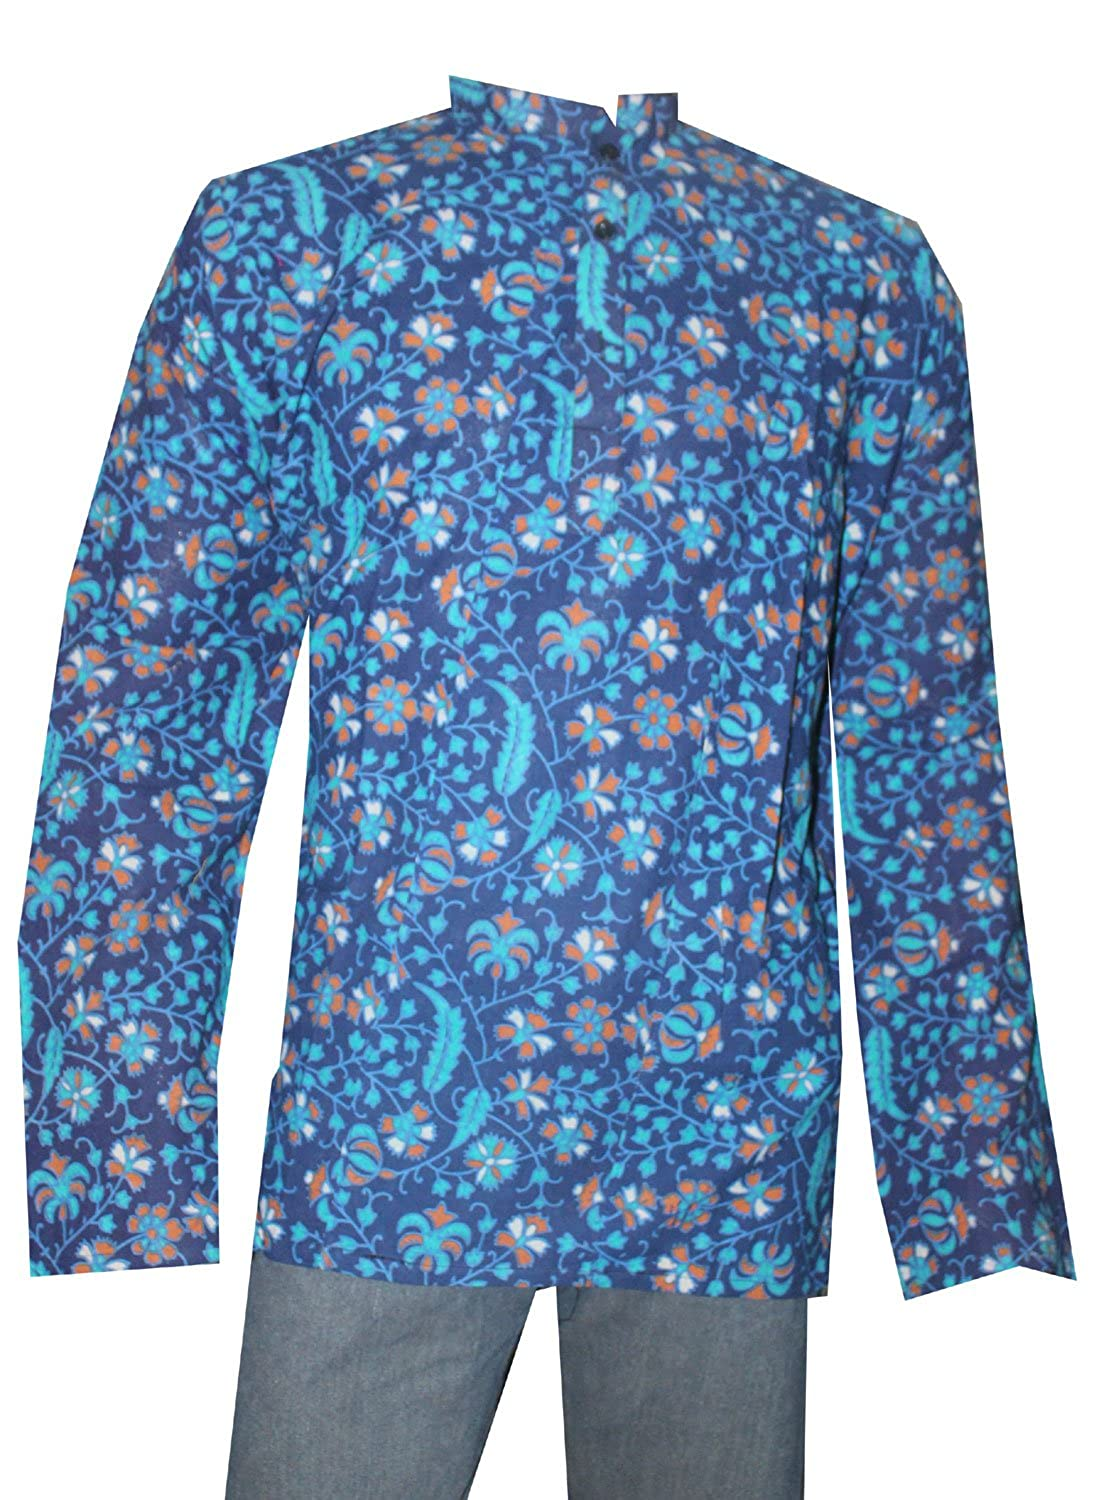 Lakkar Havali Indian 100/% Pure Cotton Men/'s Shirt Loose Fit Shirt Kurta Floral Print Blue Color